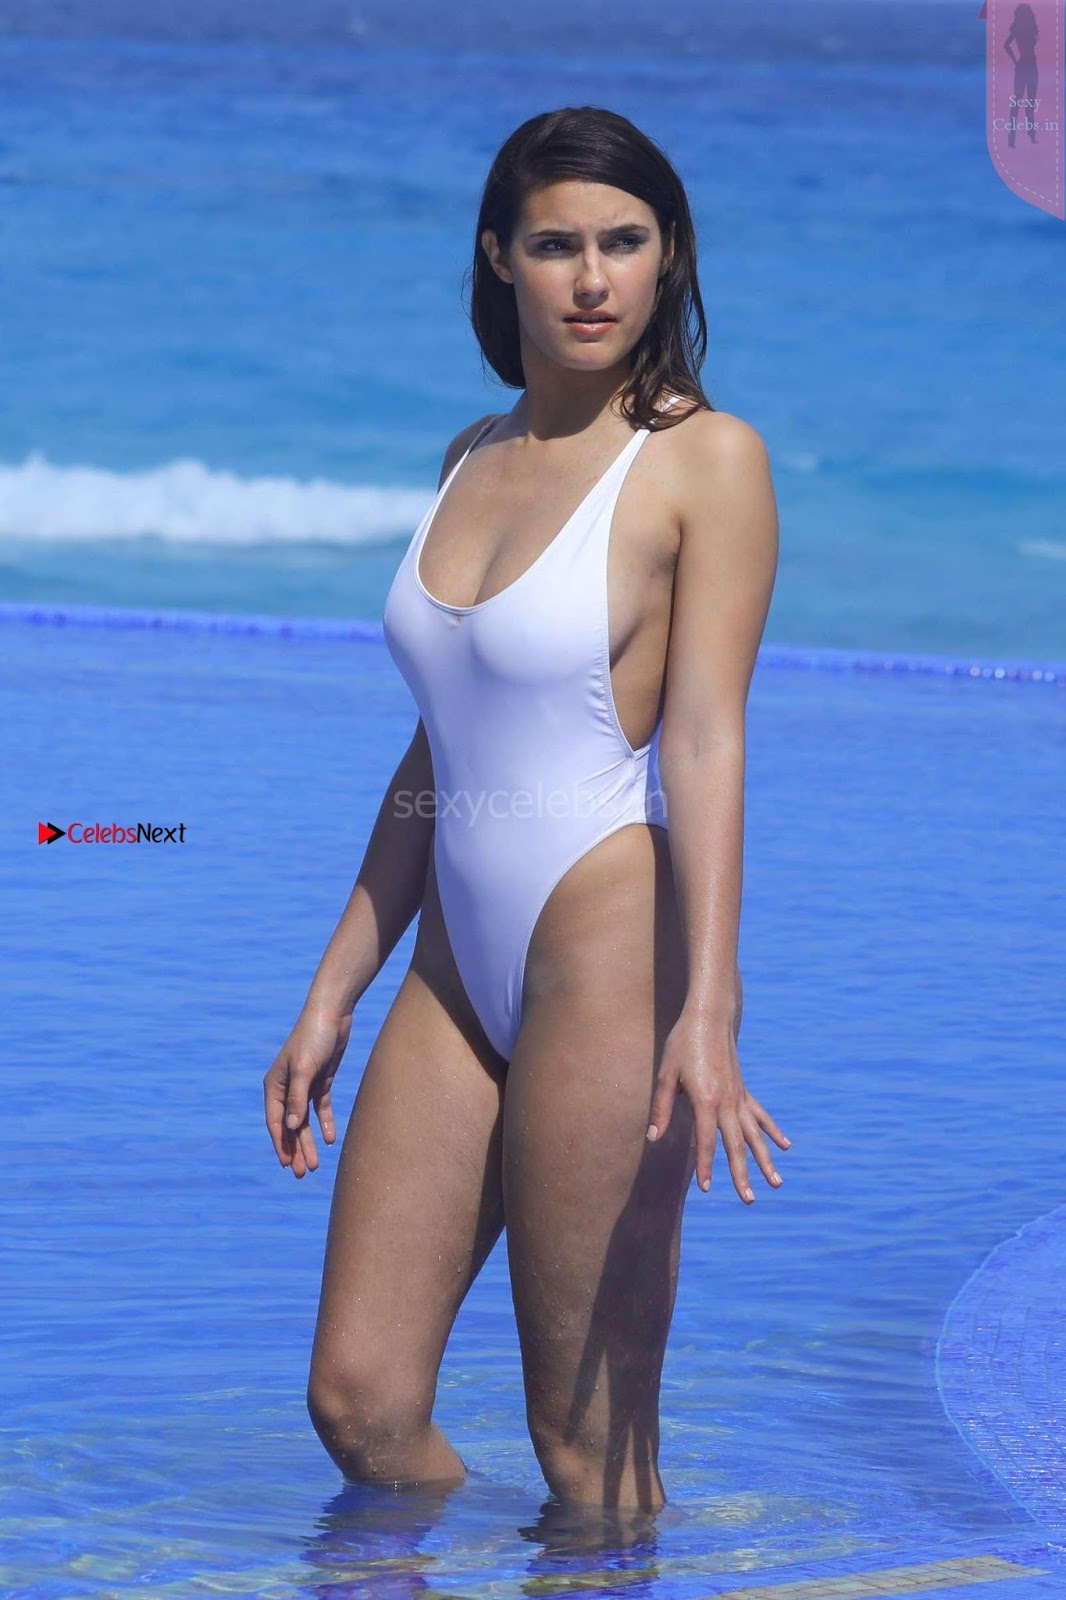 Tao Wickrath in sexy white Revealing One Piece Swimsuit in Miami 03.08.2017